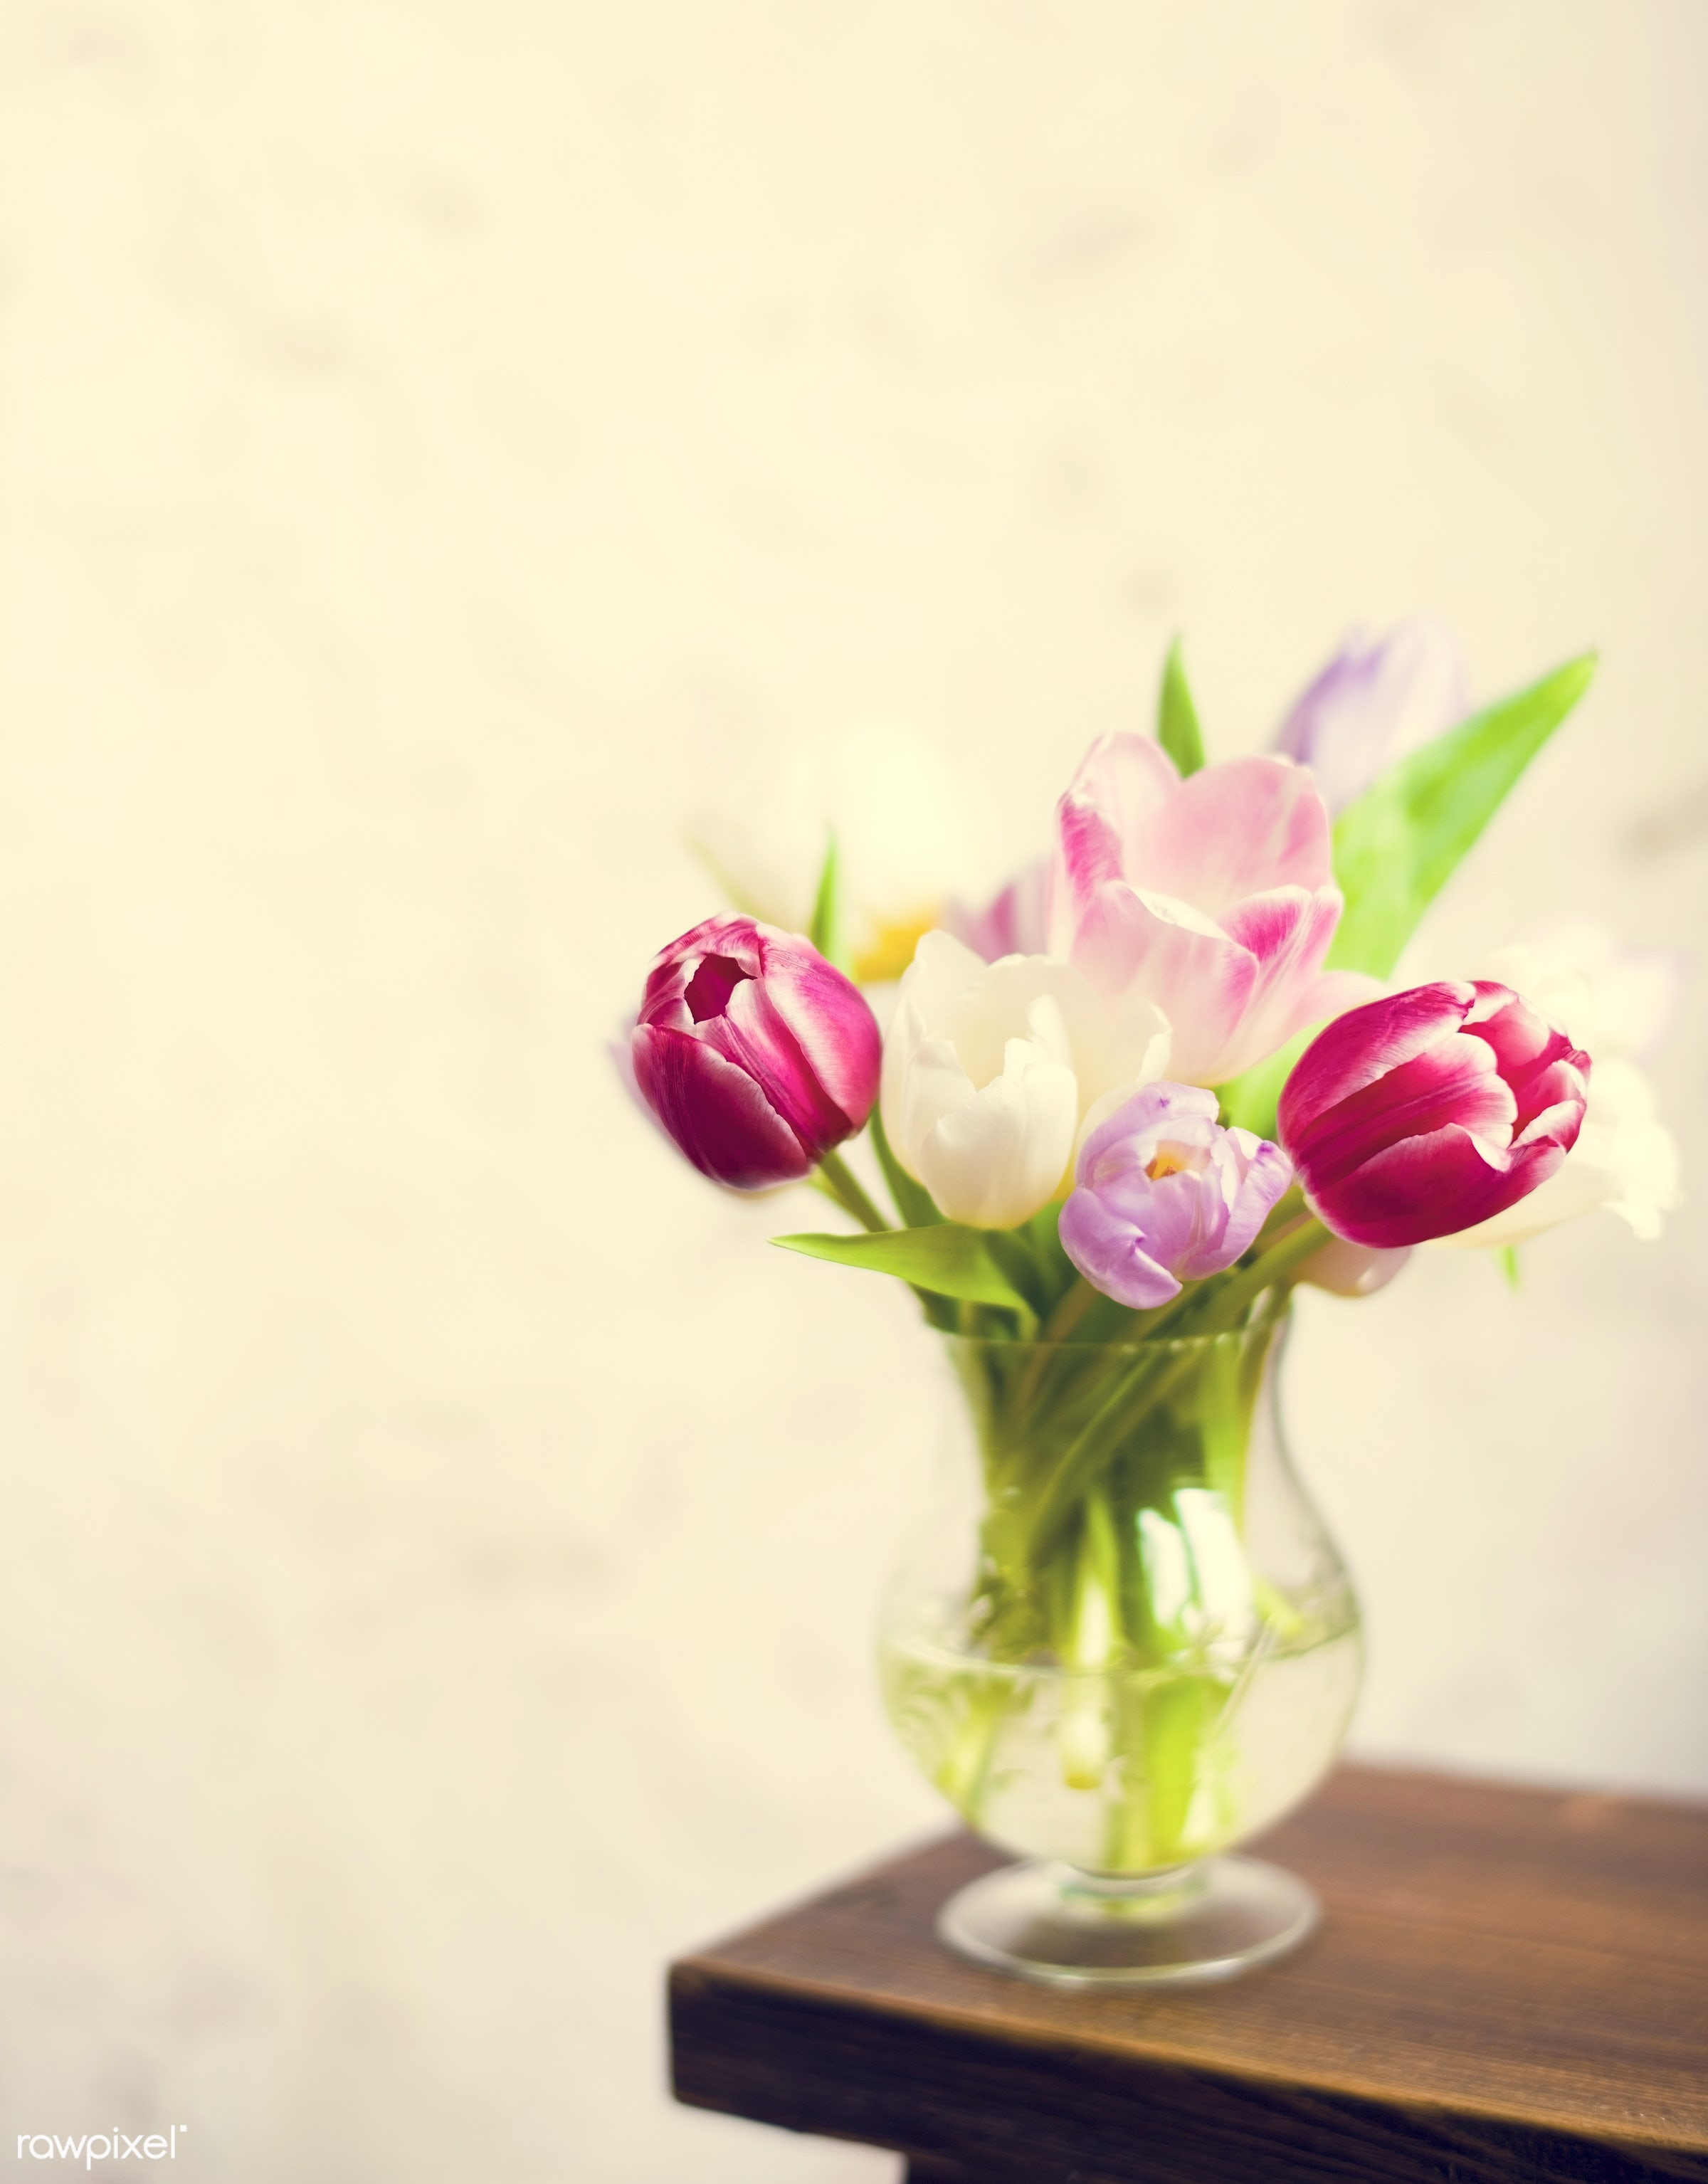 festive, nobody, detail, decorative, colorful, events, plants, tulips, spring, blossom, decor, nature, fresh, attractive,...